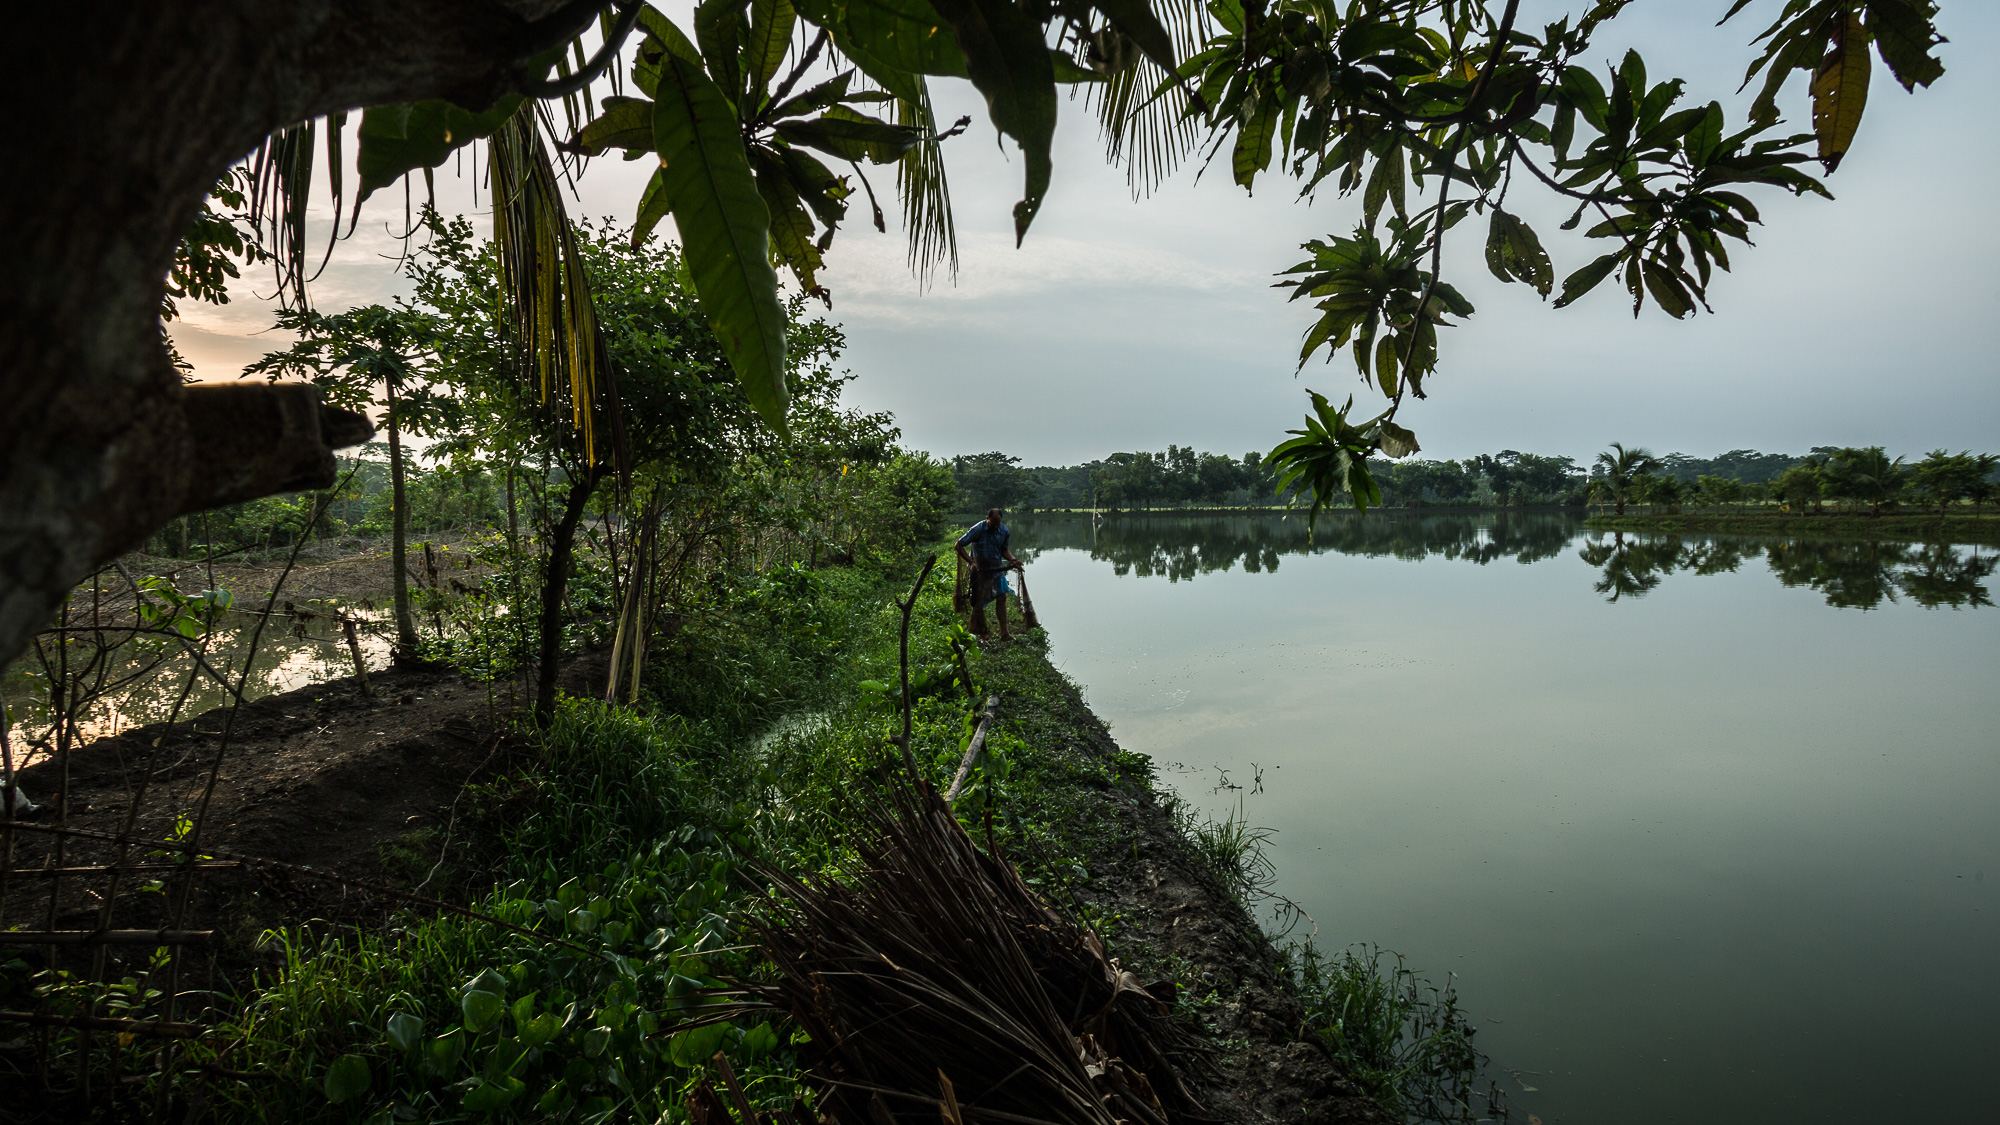 Mambubur Rahman (Babul), 36, casts his net into a nearby fish pond.